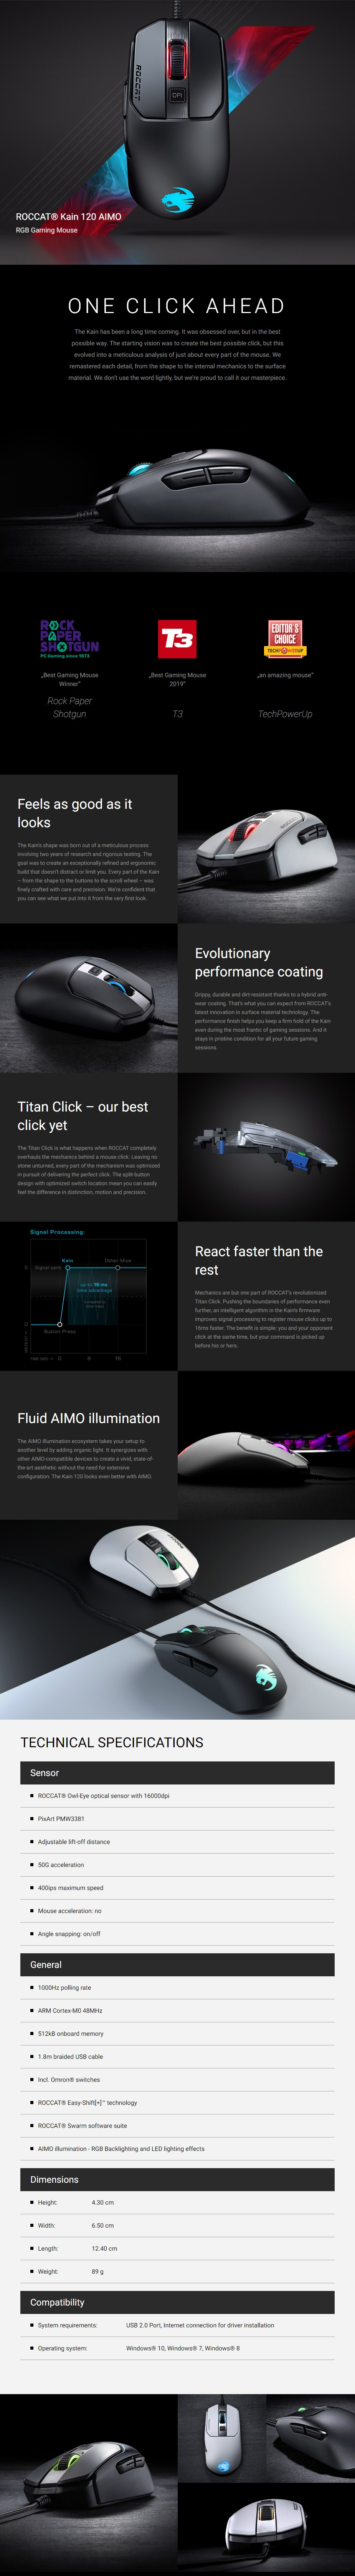 Roccat Kain 120 AIMO RGB Optical Gaming Mouse - Overview 1